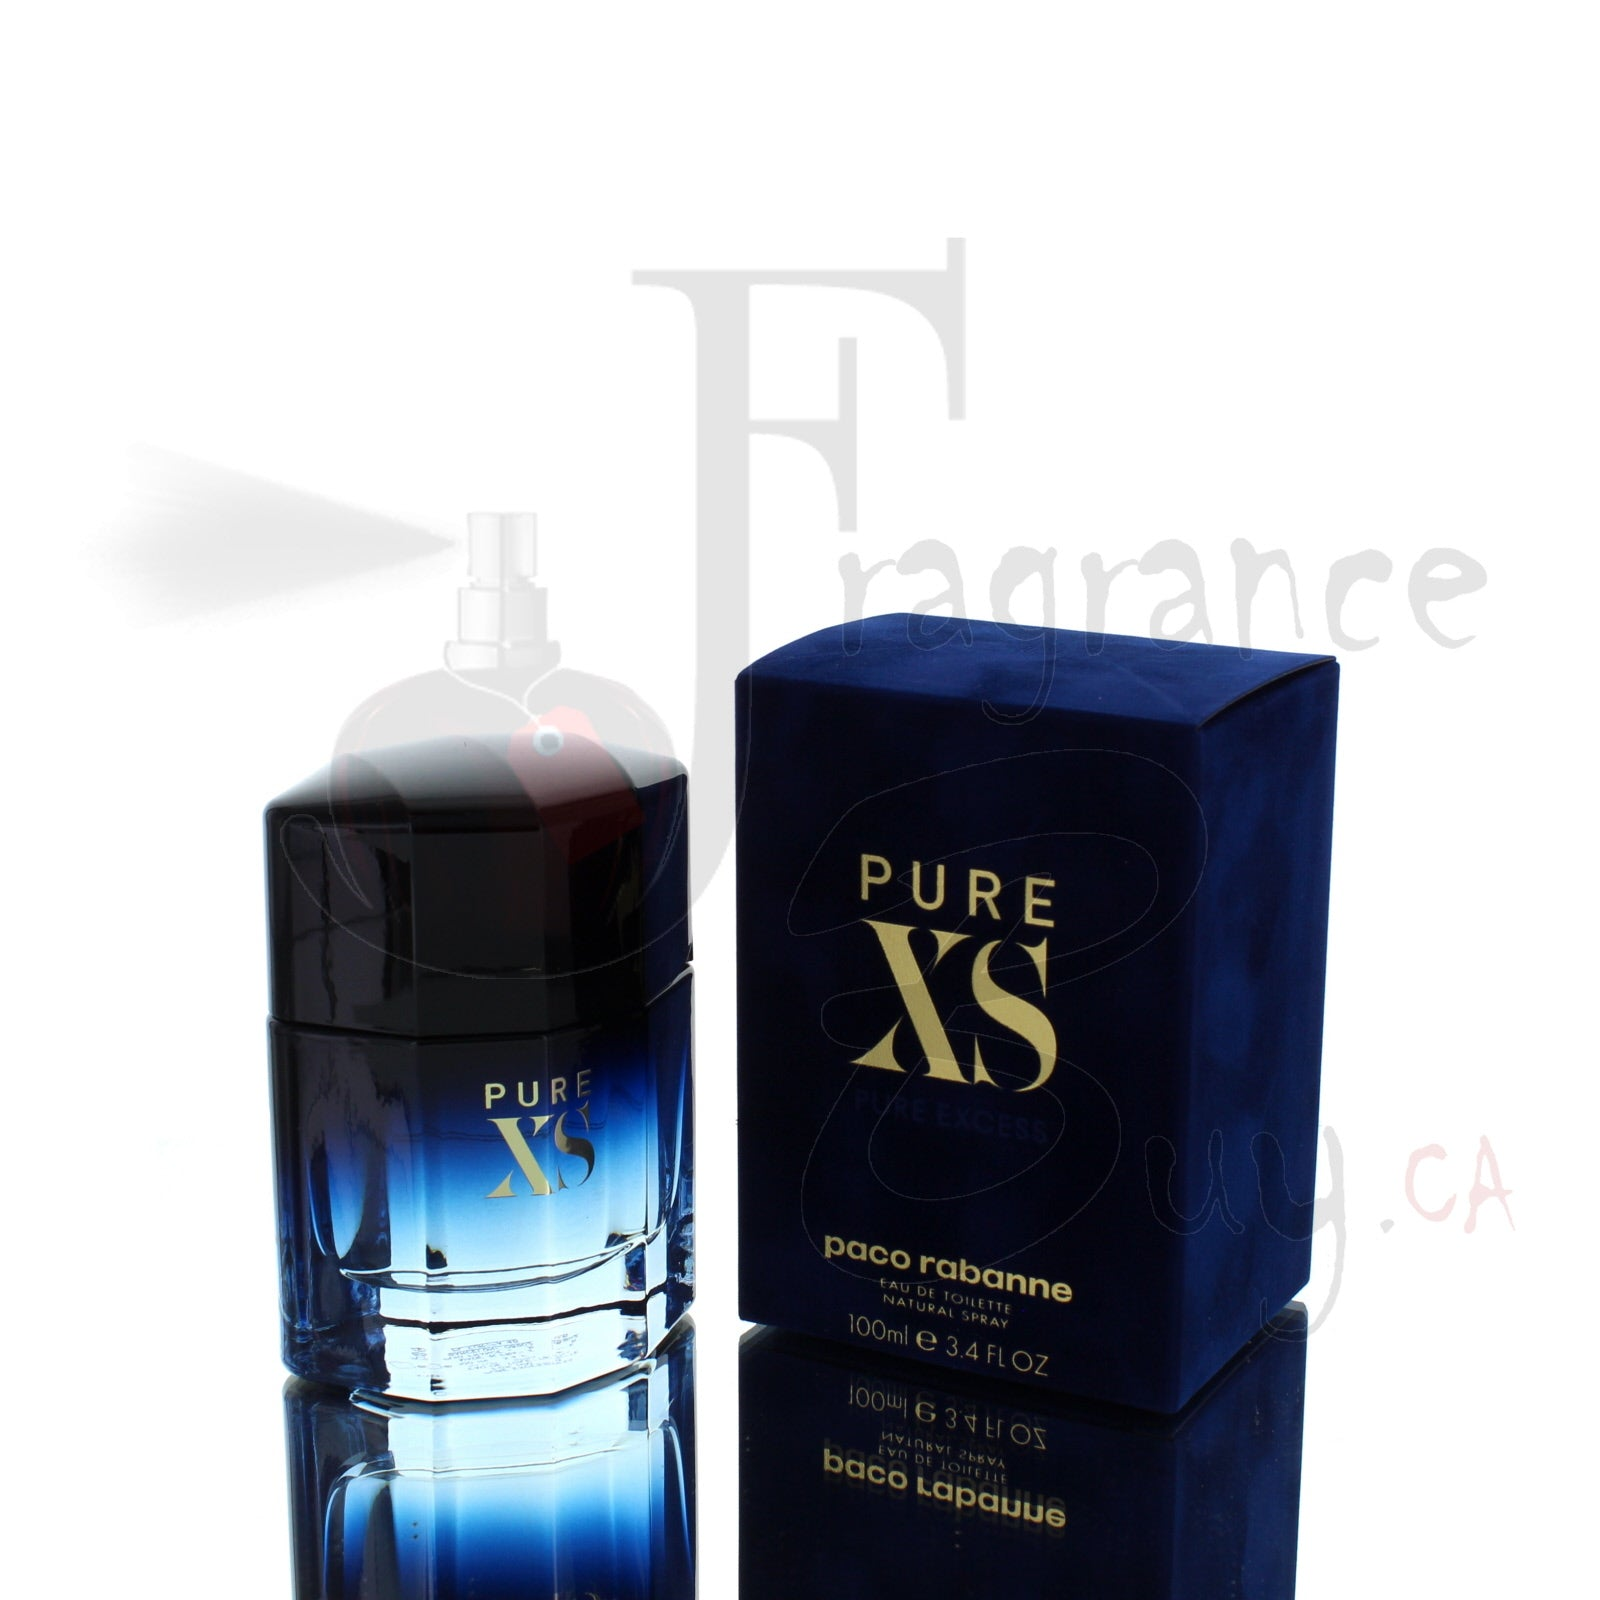 Paco Rabanne PURE XS (2017) For Man